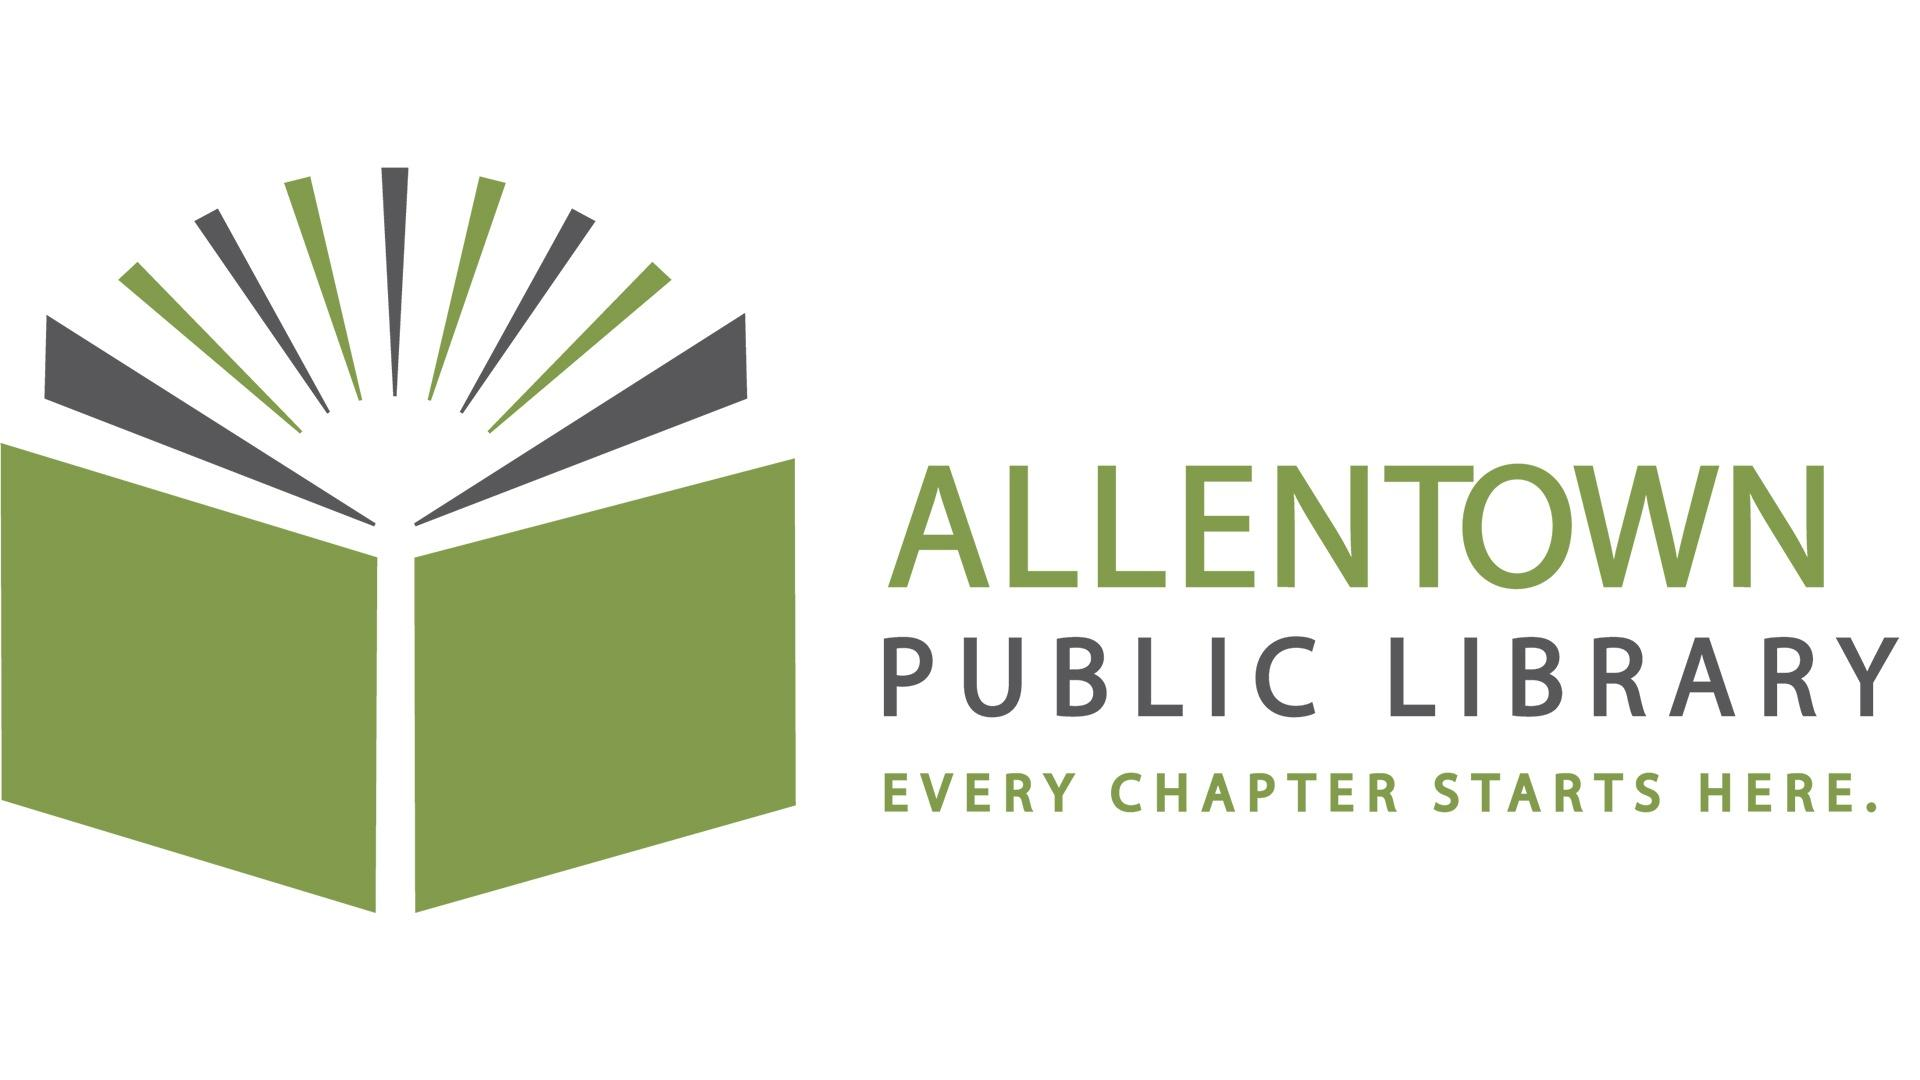 Allentown Public Library - Every chapter starts here